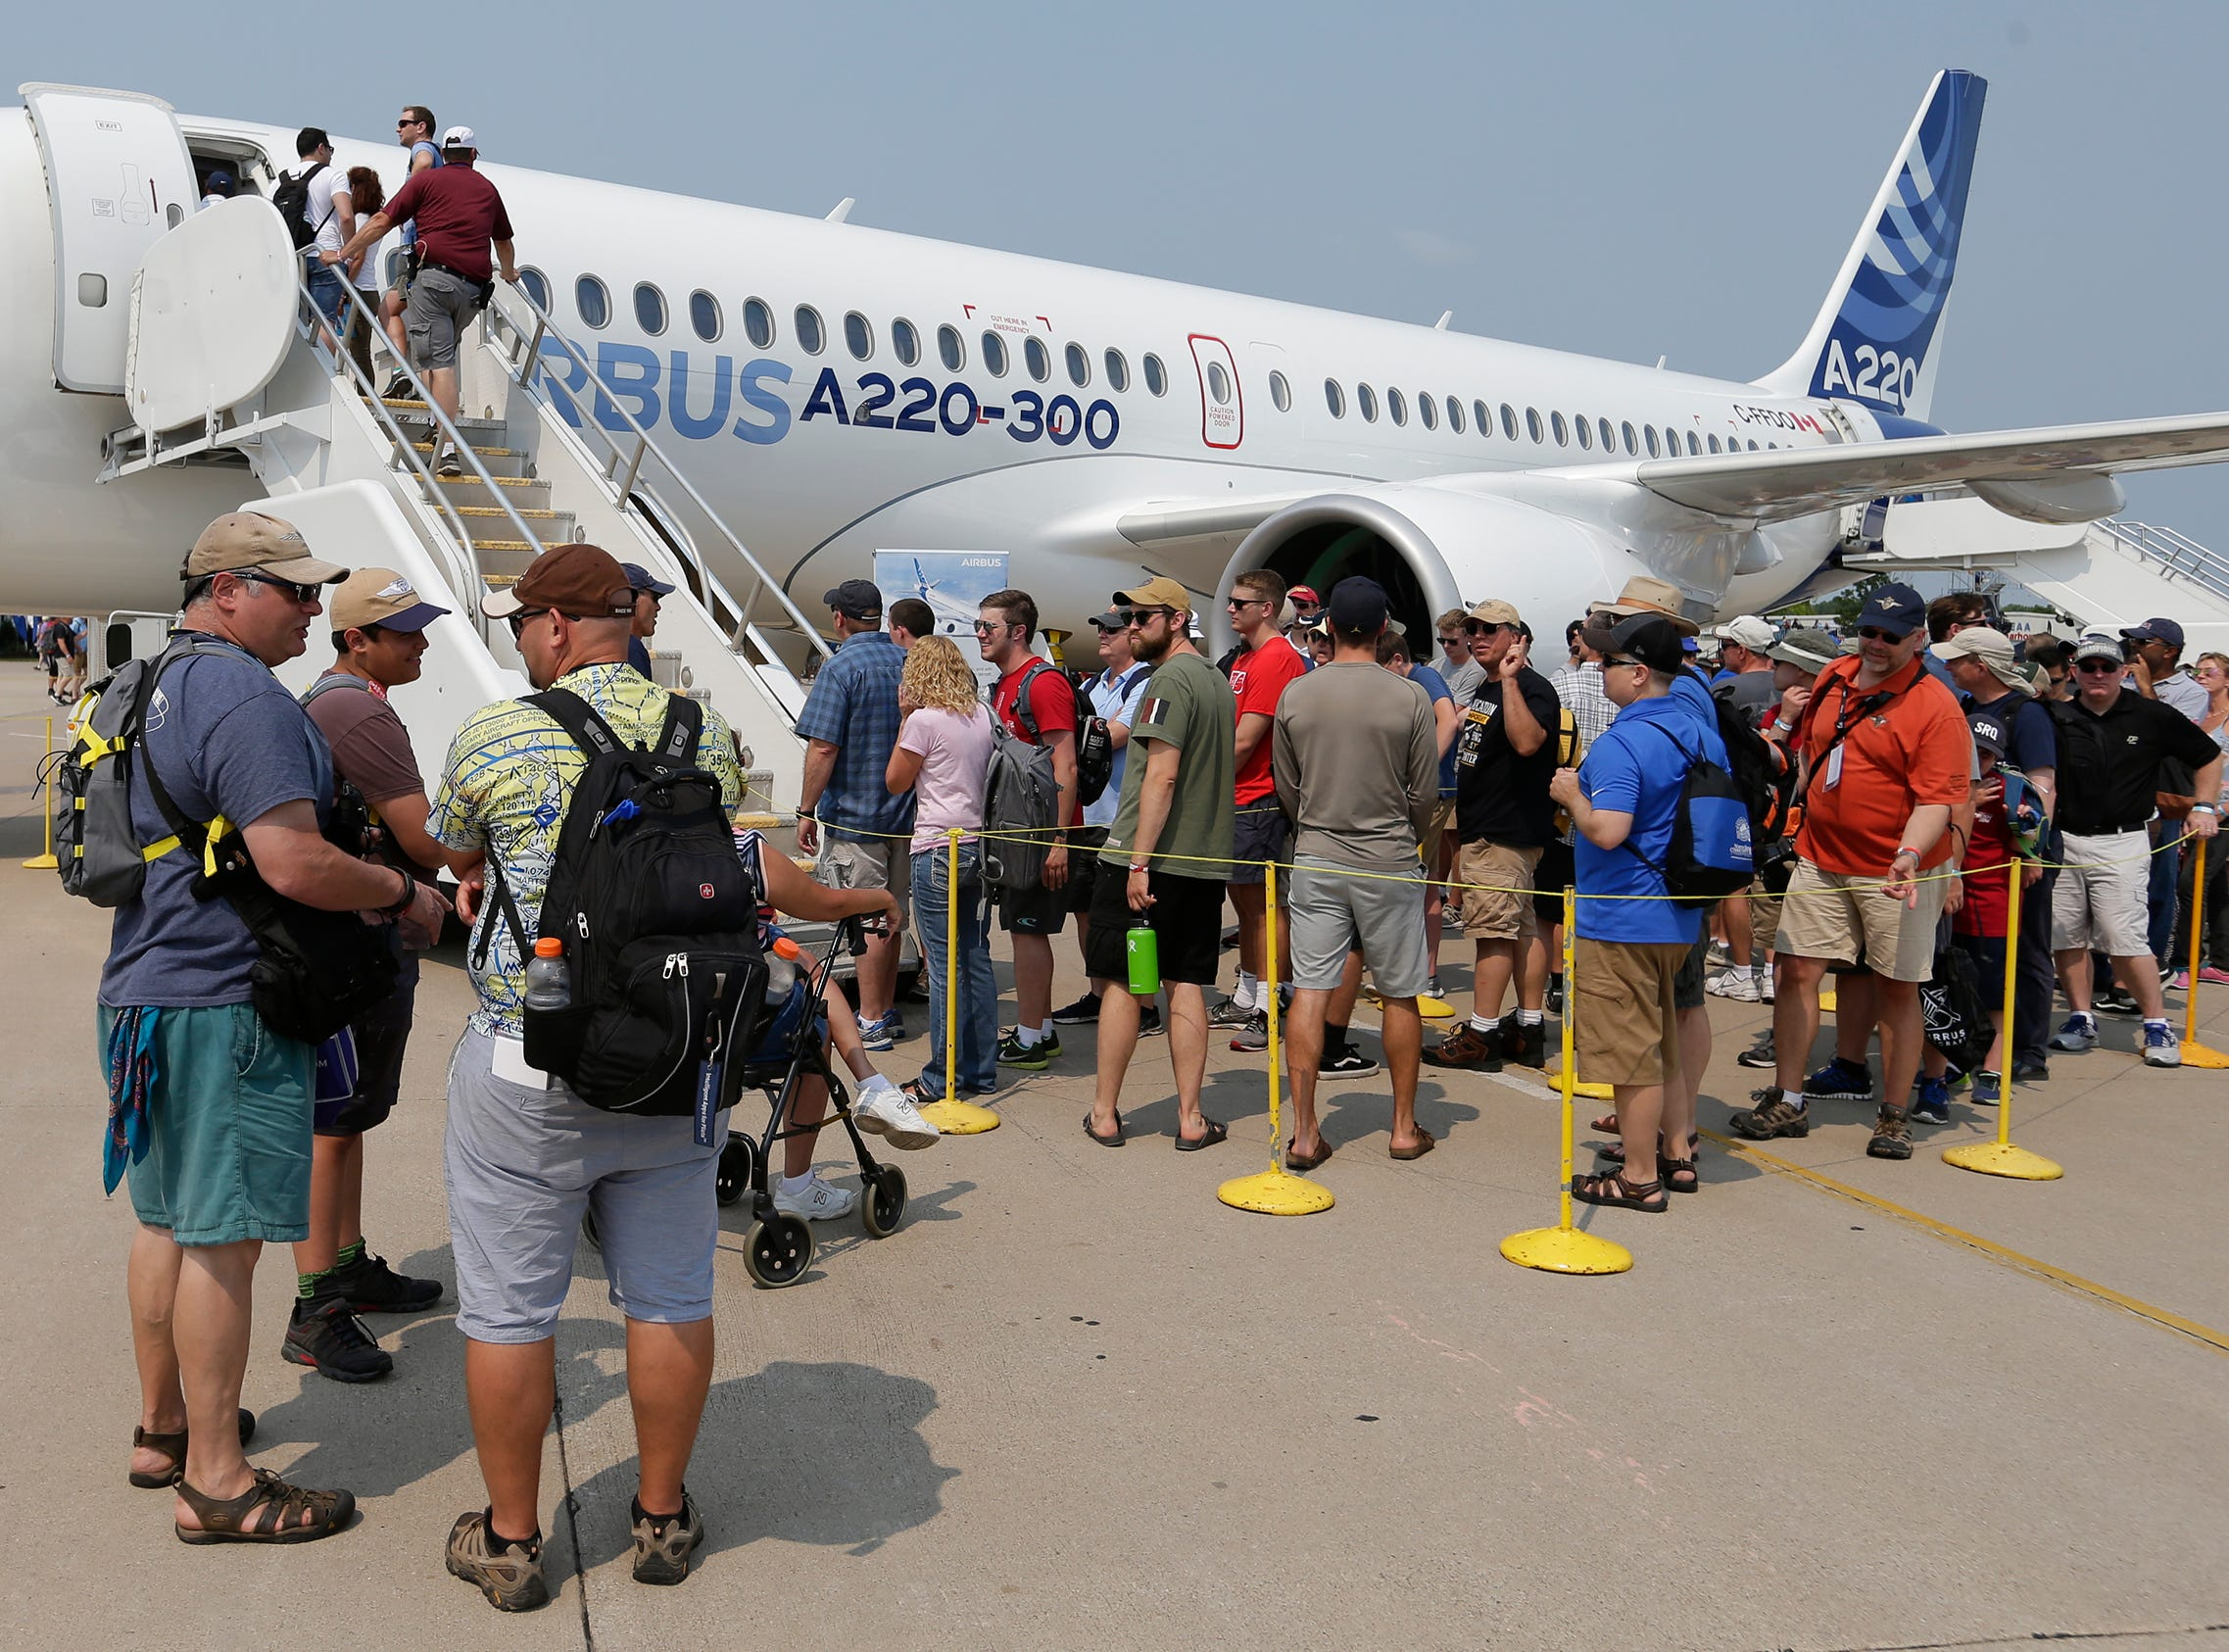 Spectators wait in line to get a look at the AirBus A220-300 which flew into AirVenture 2018. The first day of AirVenture 2018 opened on July 23, 2018.  Thousands of people will pass through the gates of AirVenture.